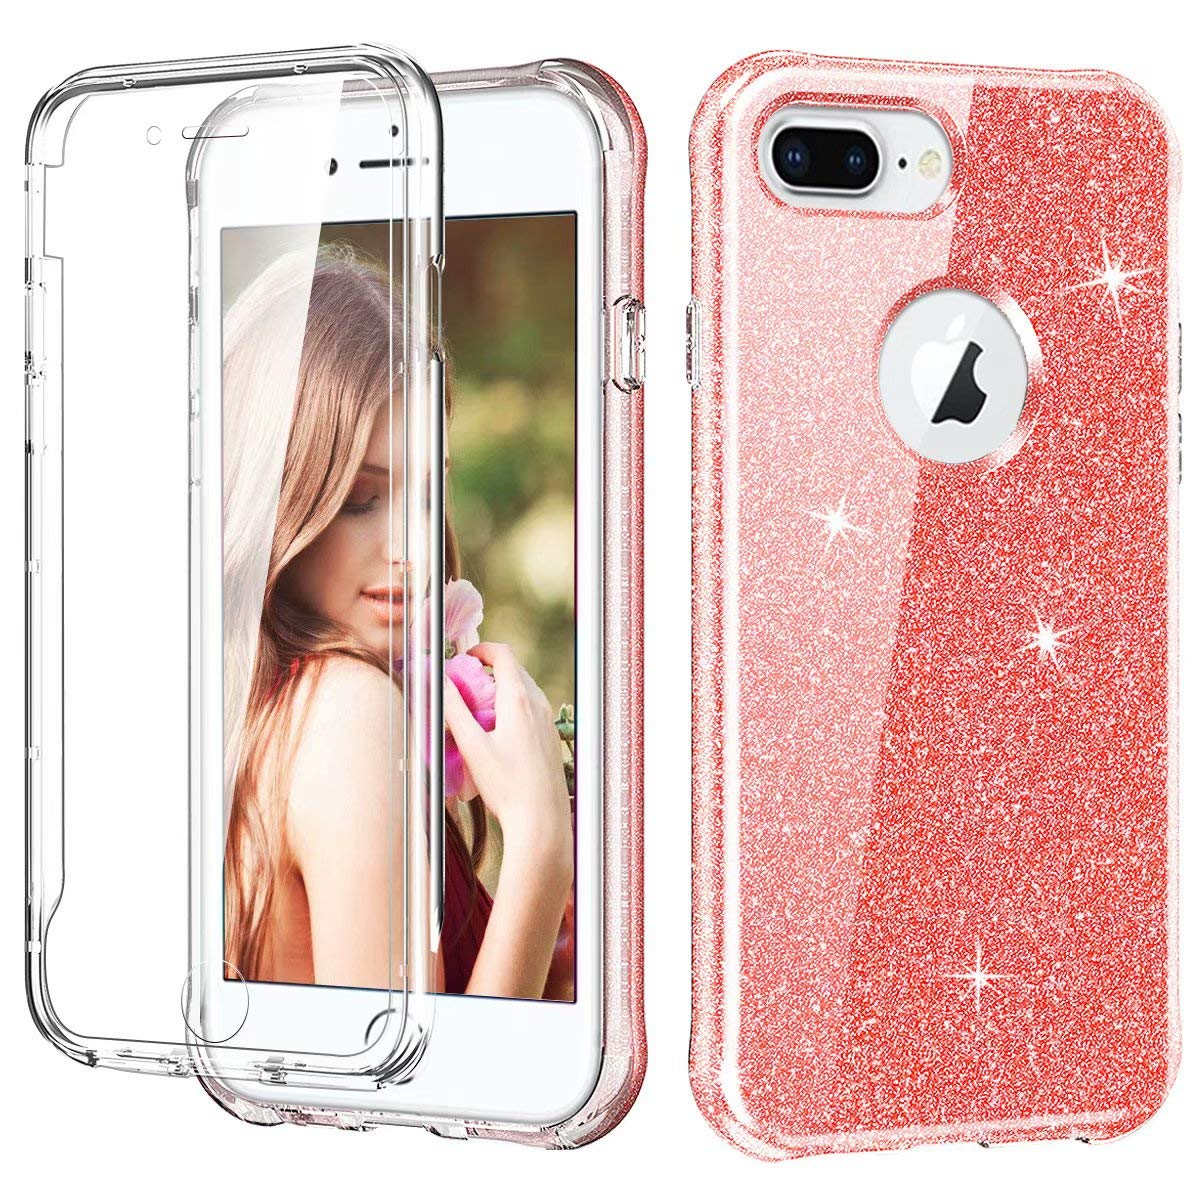 iPhone 8 Plus / 7 Plus Case, Ranyi Full Body Protective Crystal Transparent Cover Hybrid Bumper [Built in Screen Protector] Flexible Resilient TPU Case for 5.5 Inch iPhone 8 Plus /7 Plus (Pink) by Ranyi